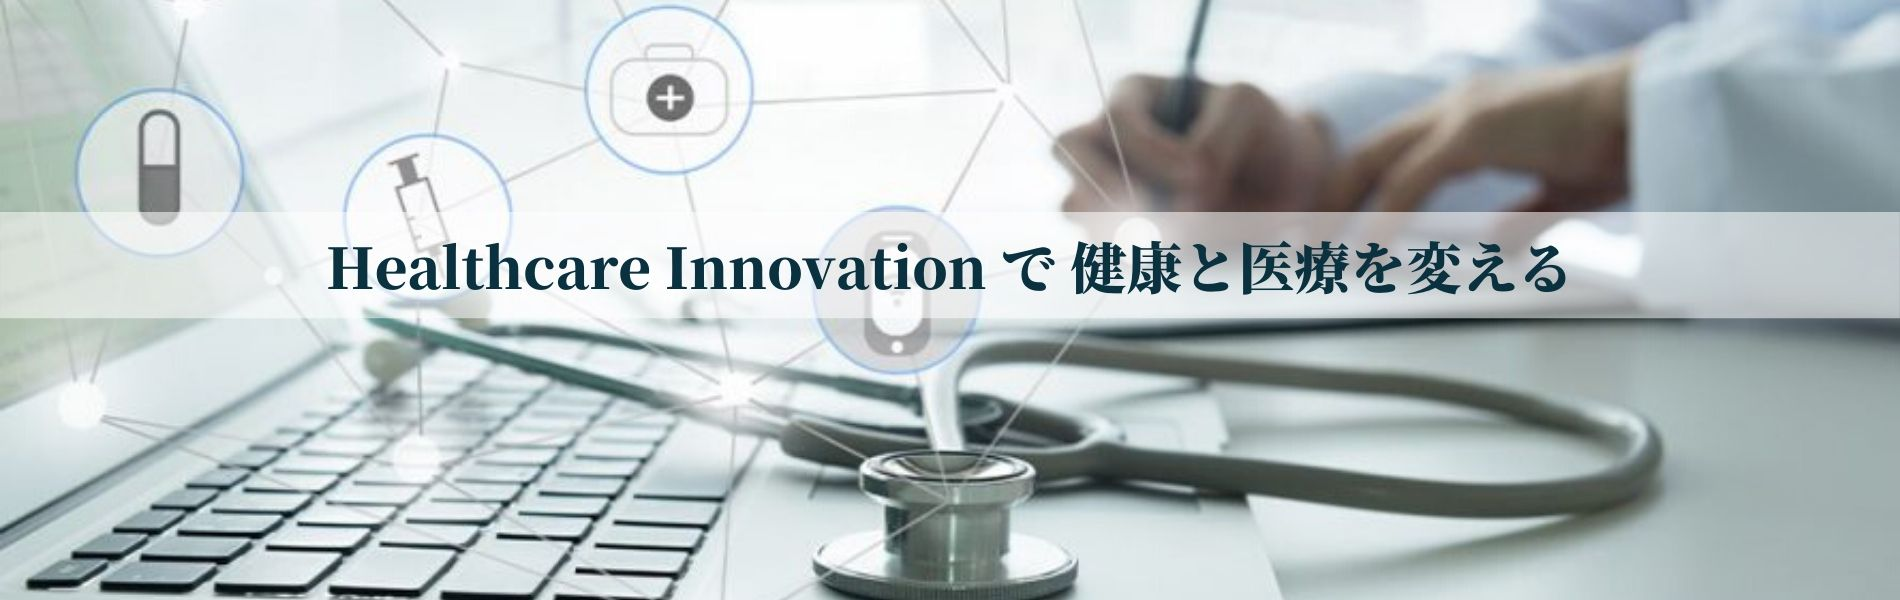 Healthcare Innovation で 健康と医療を変える